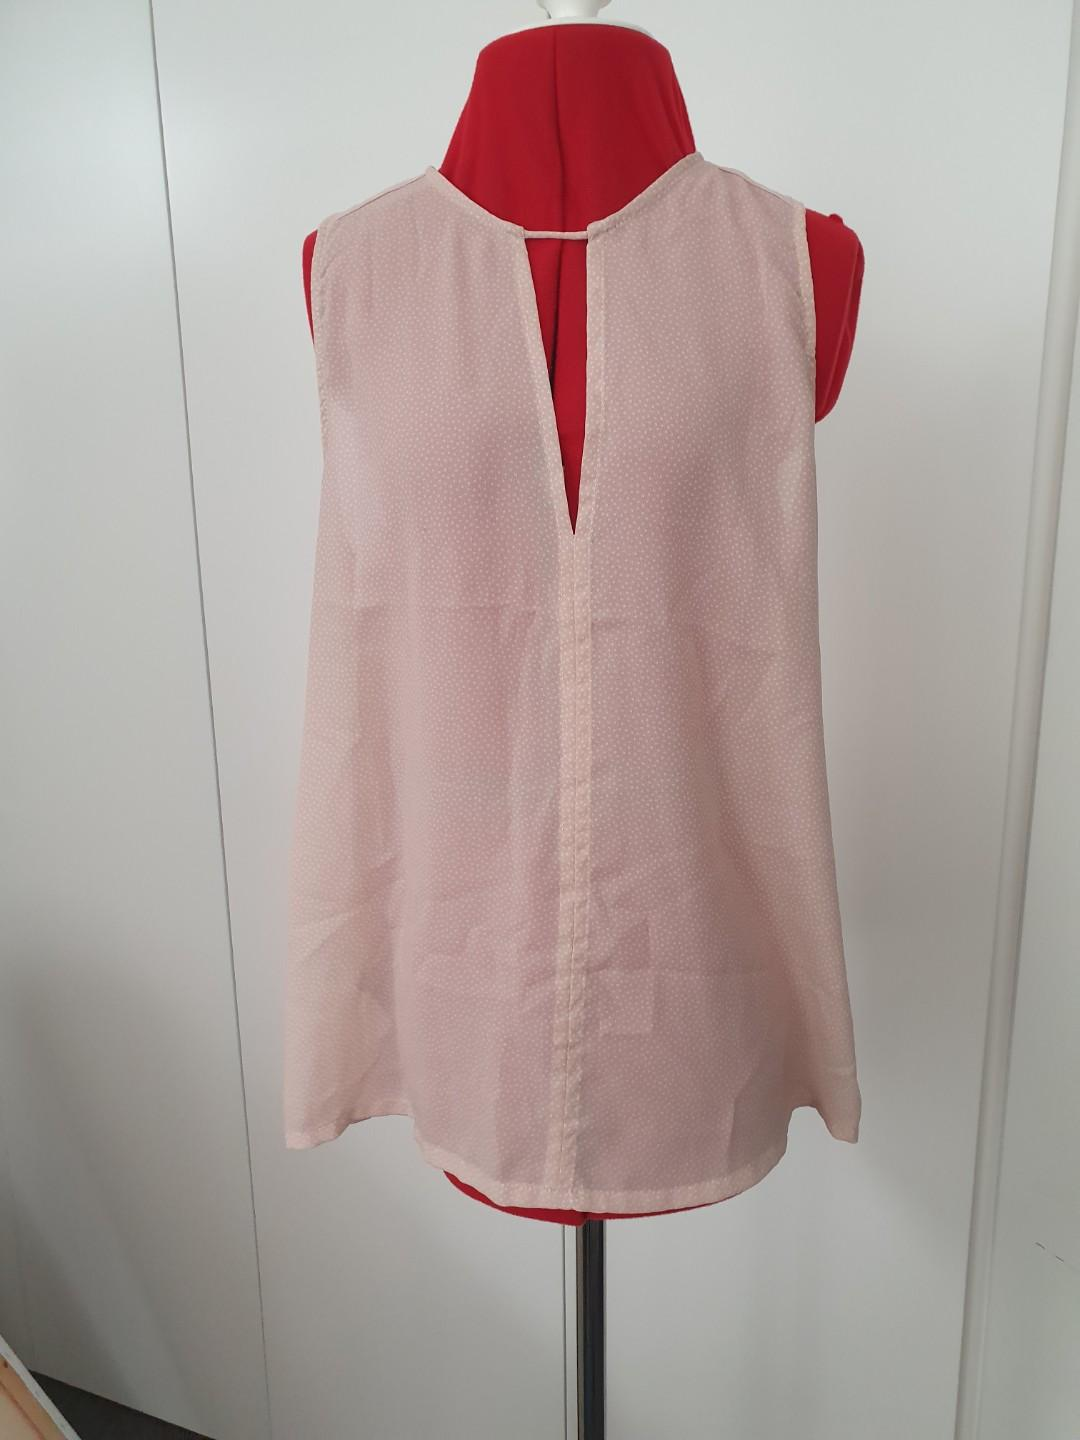 Mng collection - key hole pale pink sleeveless top - eur s #swapau